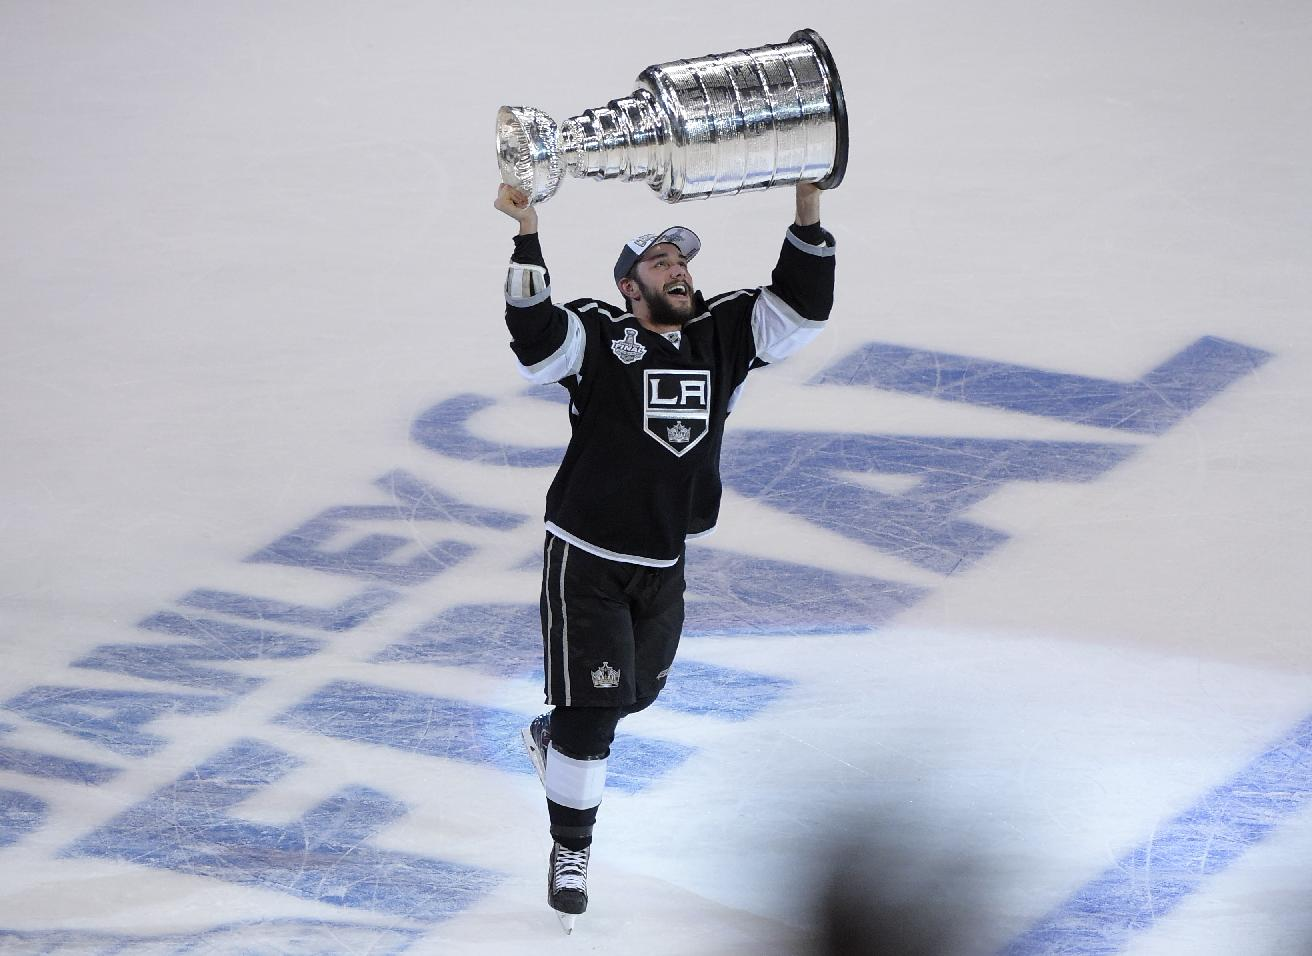 NHL Champions: Kings Complete Epic Stanley Cup Quest, And The Future Looks Bright In L.A.